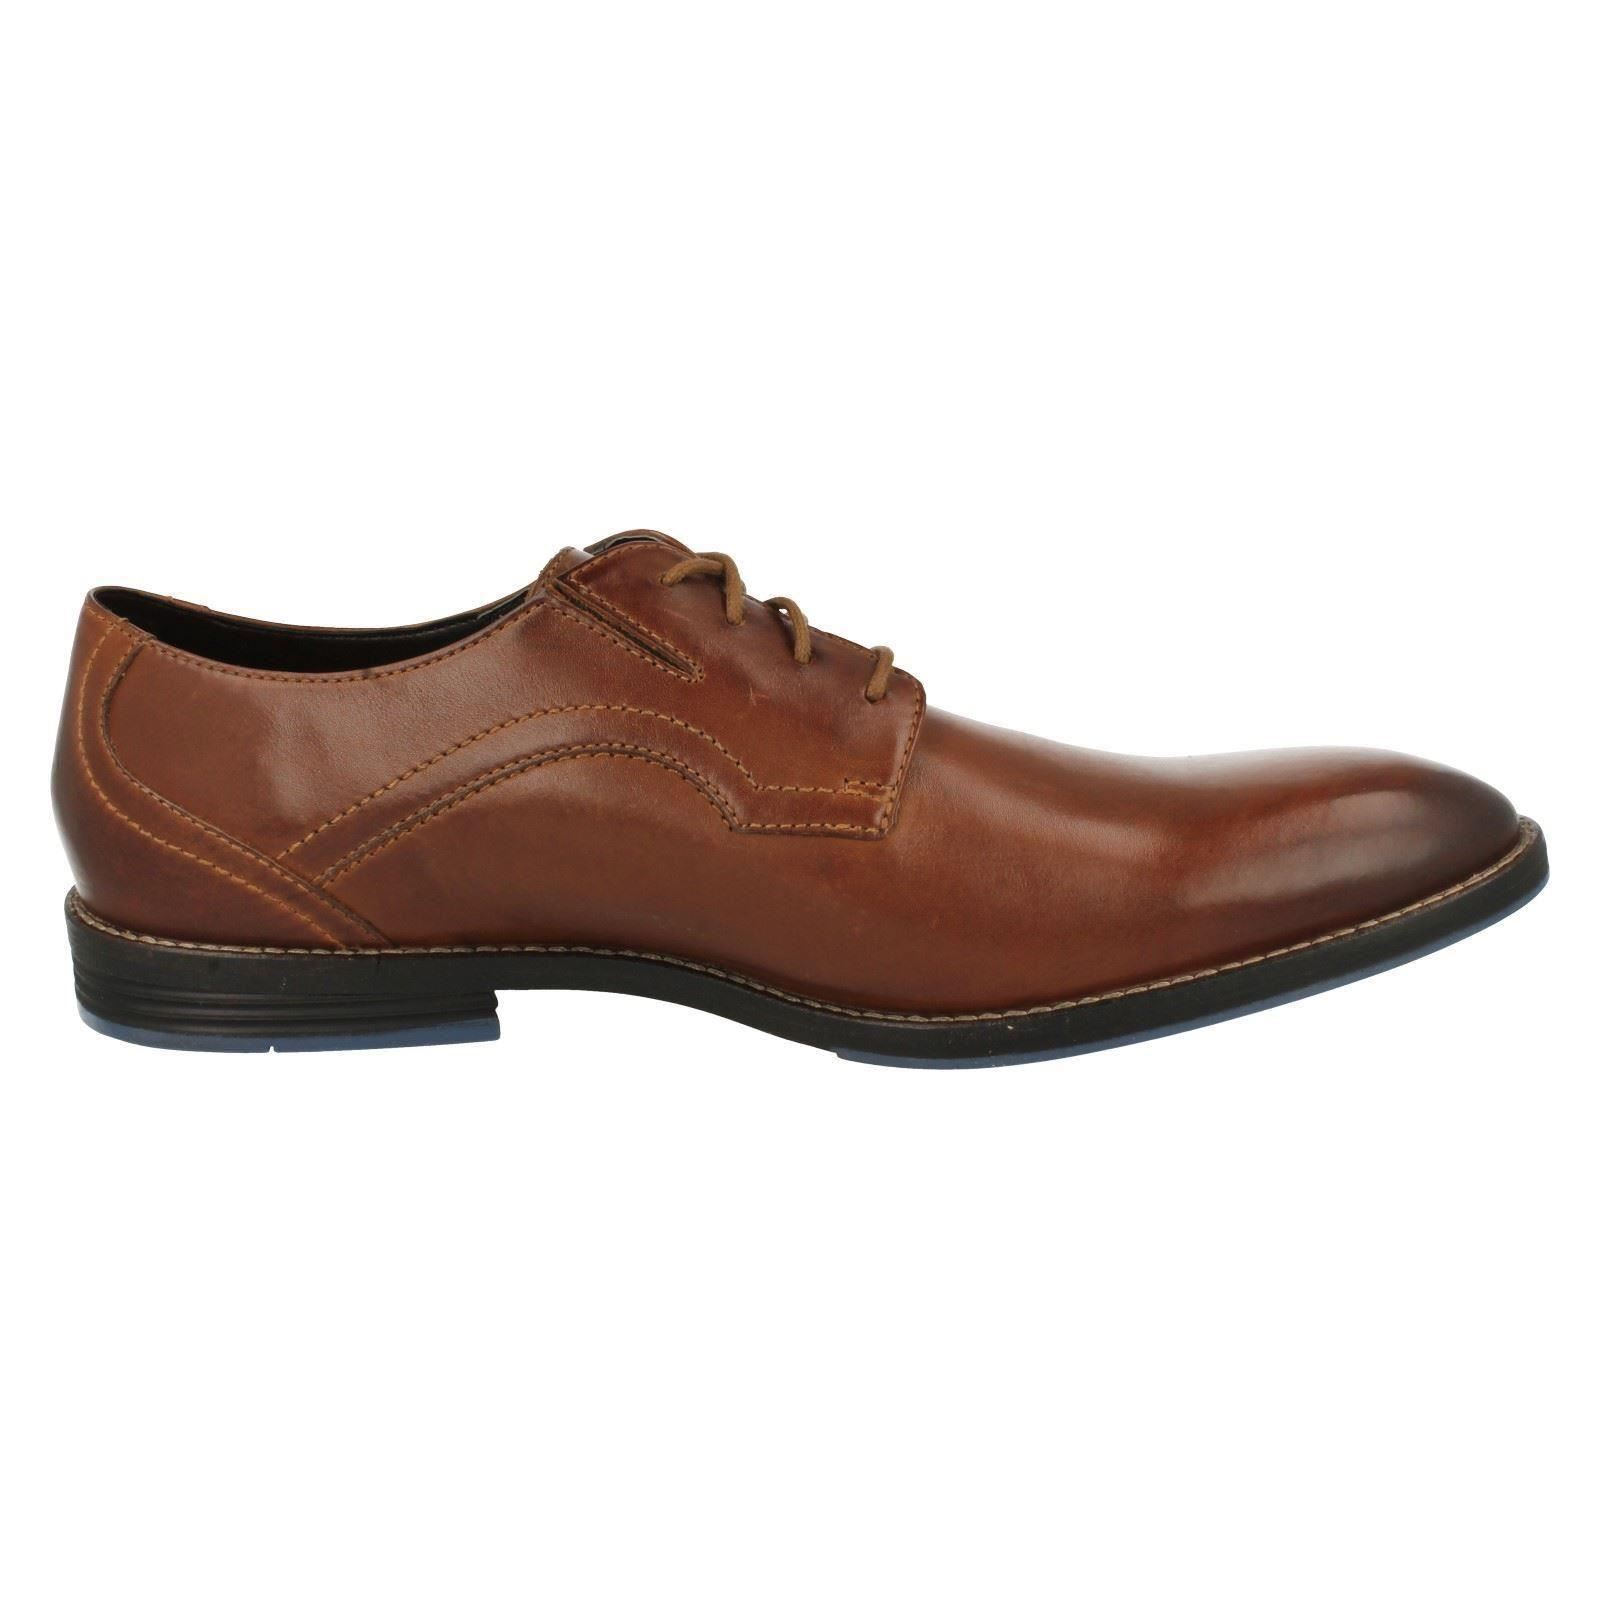 Herren Clarks Prangley Walk Walk Prangley Formal Schuhes 751ecf